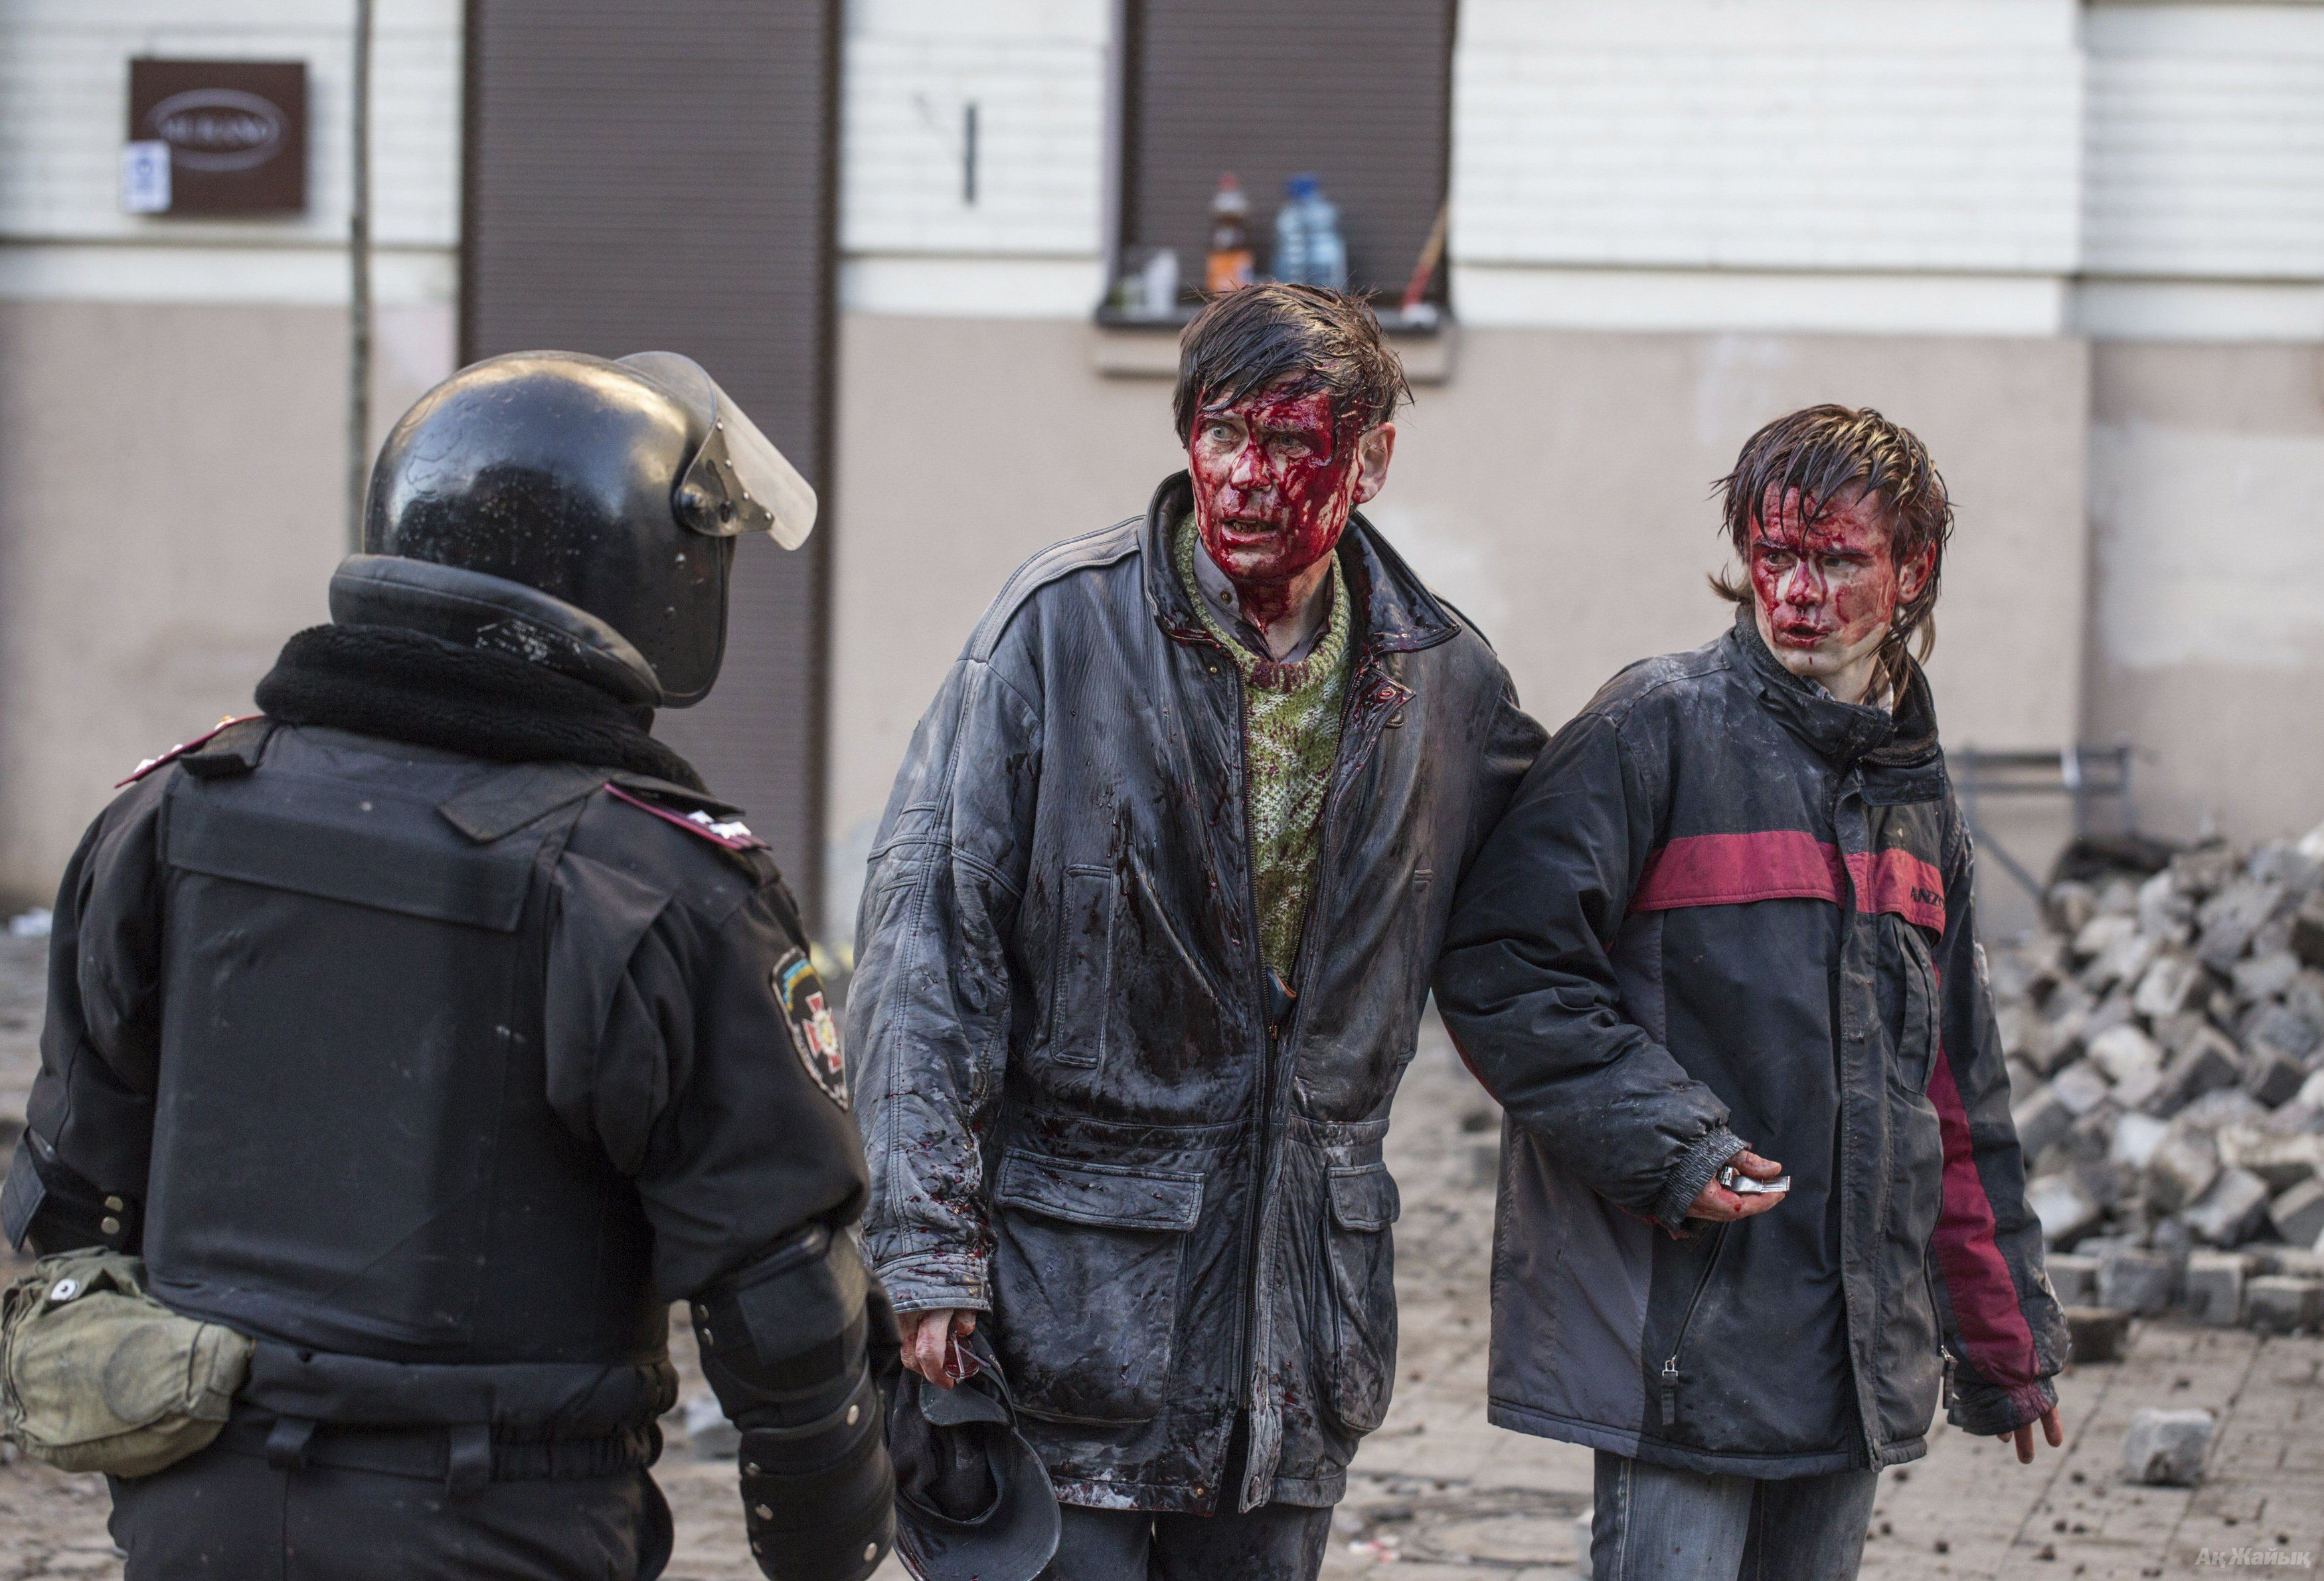 Wounded people are seen after clashes with riot police in central Kiev February 18, 2014.